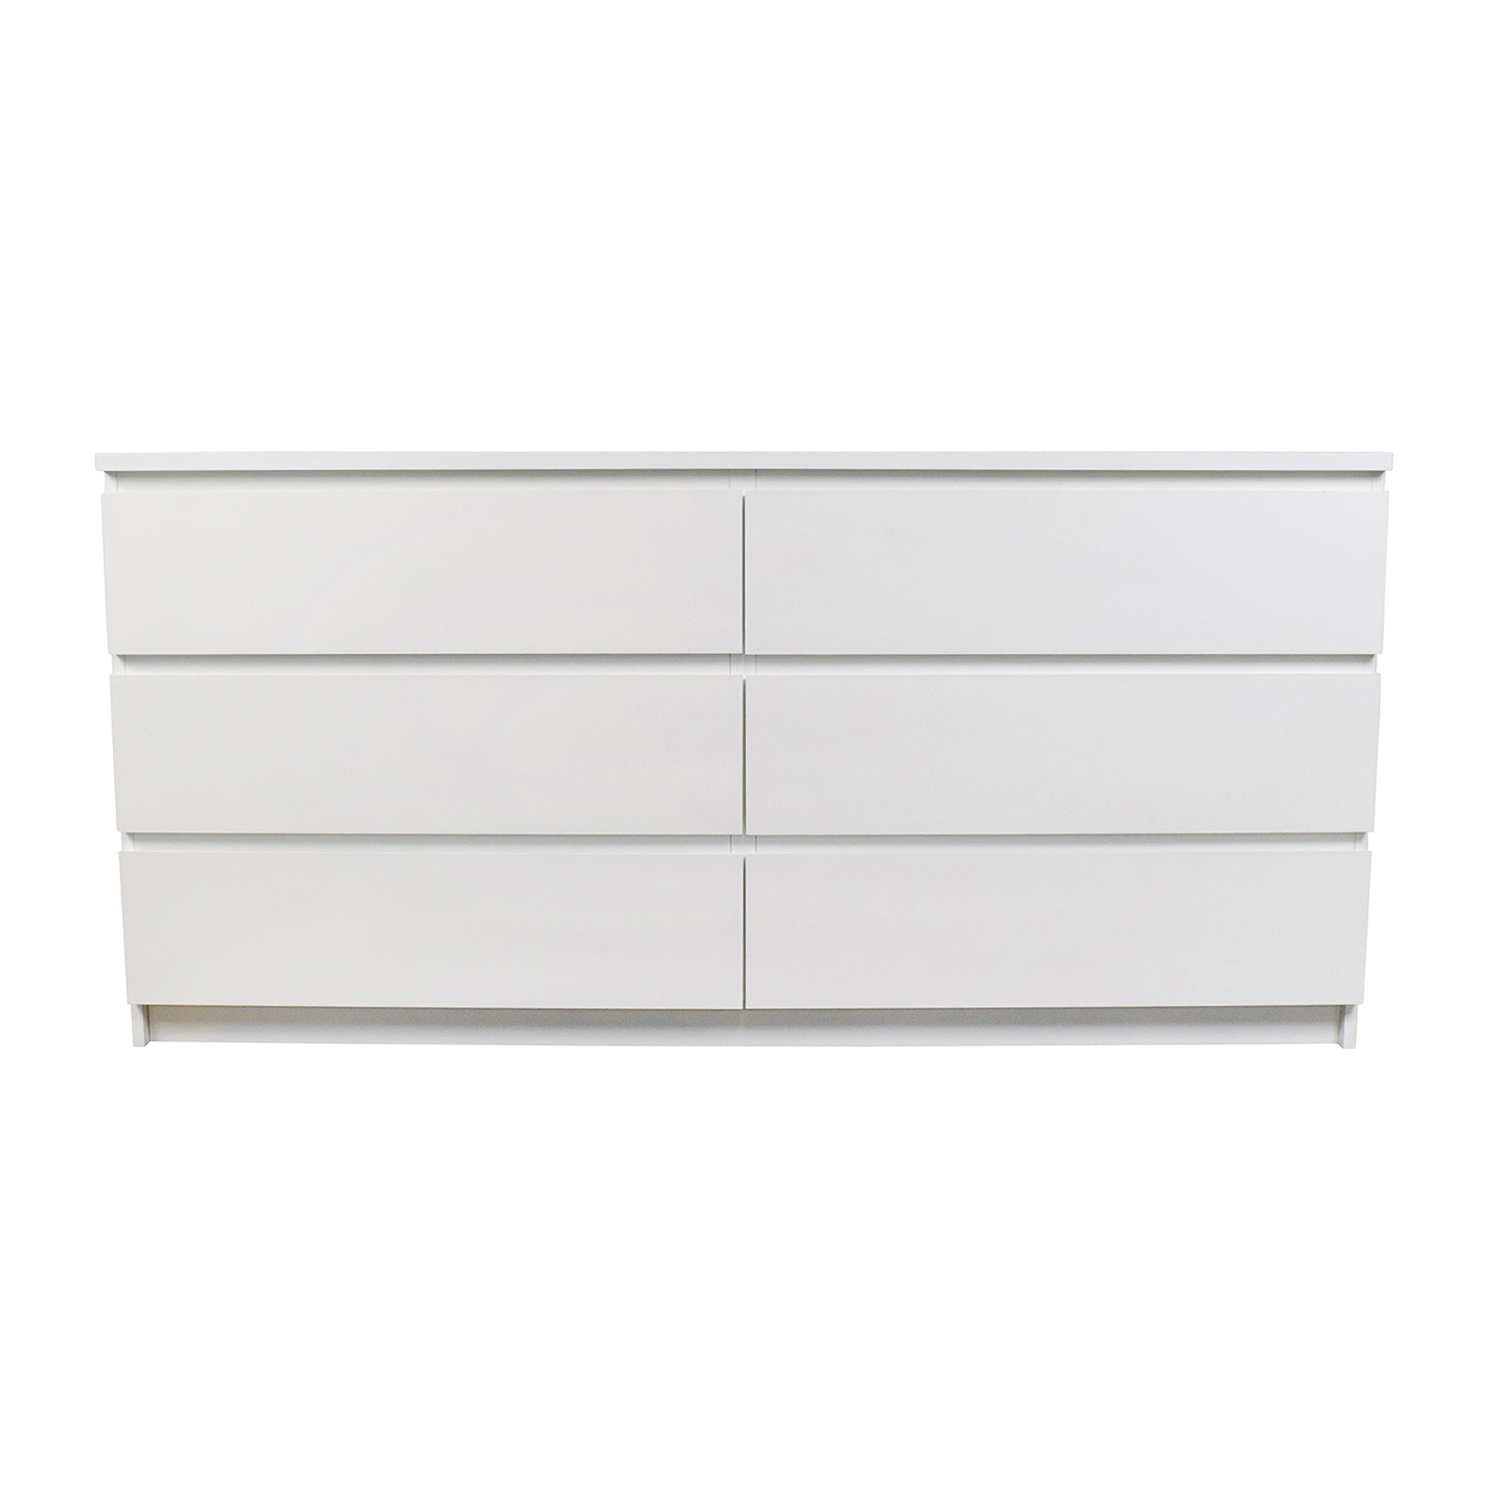 IKEA IKEA Malm 6-Drawer White Dresser dimensions ...